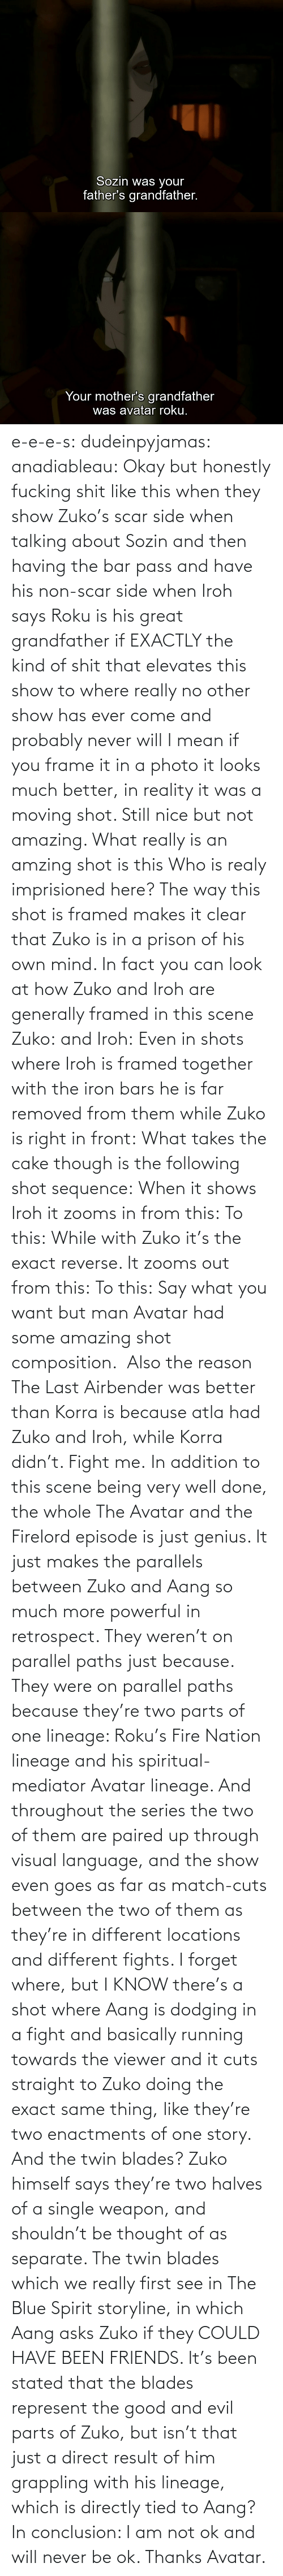 great: e-e-e-s: dudeinpyjamas:   anadiableau: Okay but honestly fucking shit like this when they show Zuko's scar side when talking about Sozin and then having the bar pass and have his non-scar side when Iroh says Roku is his great grandfather if EXACTLY the kind of shit that elevates this show to where really no other show has ever come and probably never will I mean if you frame it in a photo it looks much better, in reality it was a moving shot. Still nice but not amazing. What really is an amzing shot is this Who is realy imprisioned here? The way this shot is framed makes it clear that Zuko is in a prison of his own mind. In fact you can look at how Zuko and Iroh are generally framed in this scene Zuko: and Iroh: Even in shots where Iroh is framed together with the iron bars he is far removed from them while Zuko is right in front:  What takes the cake though is the following shot sequence: When it shows Iroh it zooms in from this: To this: While with Zuko it's the exact reverse. It zooms out from this: To this: Say what you want but man Avatar had some amazing shot composition.   Also the reason The Last Airbender was better than Korra is because atla had Zuko and Iroh, while Korra didn't. Fight me.    In addition to this scene being very well done, the whole The Avatar and the Firelord episode is just genius.  It just makes the parallels between Zuko and Aang so much more powerful in retrospect.  They weren't on parallel paths just because.  They were on parallel paths because they're two parts of one lineage: Roku's Fire Nation lineage and his spiritual-mediator Avatar lineage.  And throughout the series the two of them are paired up through visual language, and the show even goes as far as match-cuts between the two of them as they're in different locations and different fights.  I forget where, but I KNOW there's a shot where Aang is dodging in a fight and basically running towards the viewer and it cuts straight to Zuko doing the exact same thing, like they're two enactments of one story.   And the twin blades?  Zuko himself says they're two halves of a single weapon, and shouldn't be thought of as separate.  The twin blades which we really first see in The Blue Spirit storyline, in which Aang asks Zuko if they COULD HAVE BEEN FRIENDS.  It's been stated that the blades represent the good and evil parts of Zuko, but isn't that just a direct result of him grappling with his lineage, which is directly tied to Aang? In conclusion: I am not ok and will never be ok.  Thanks Avatar.